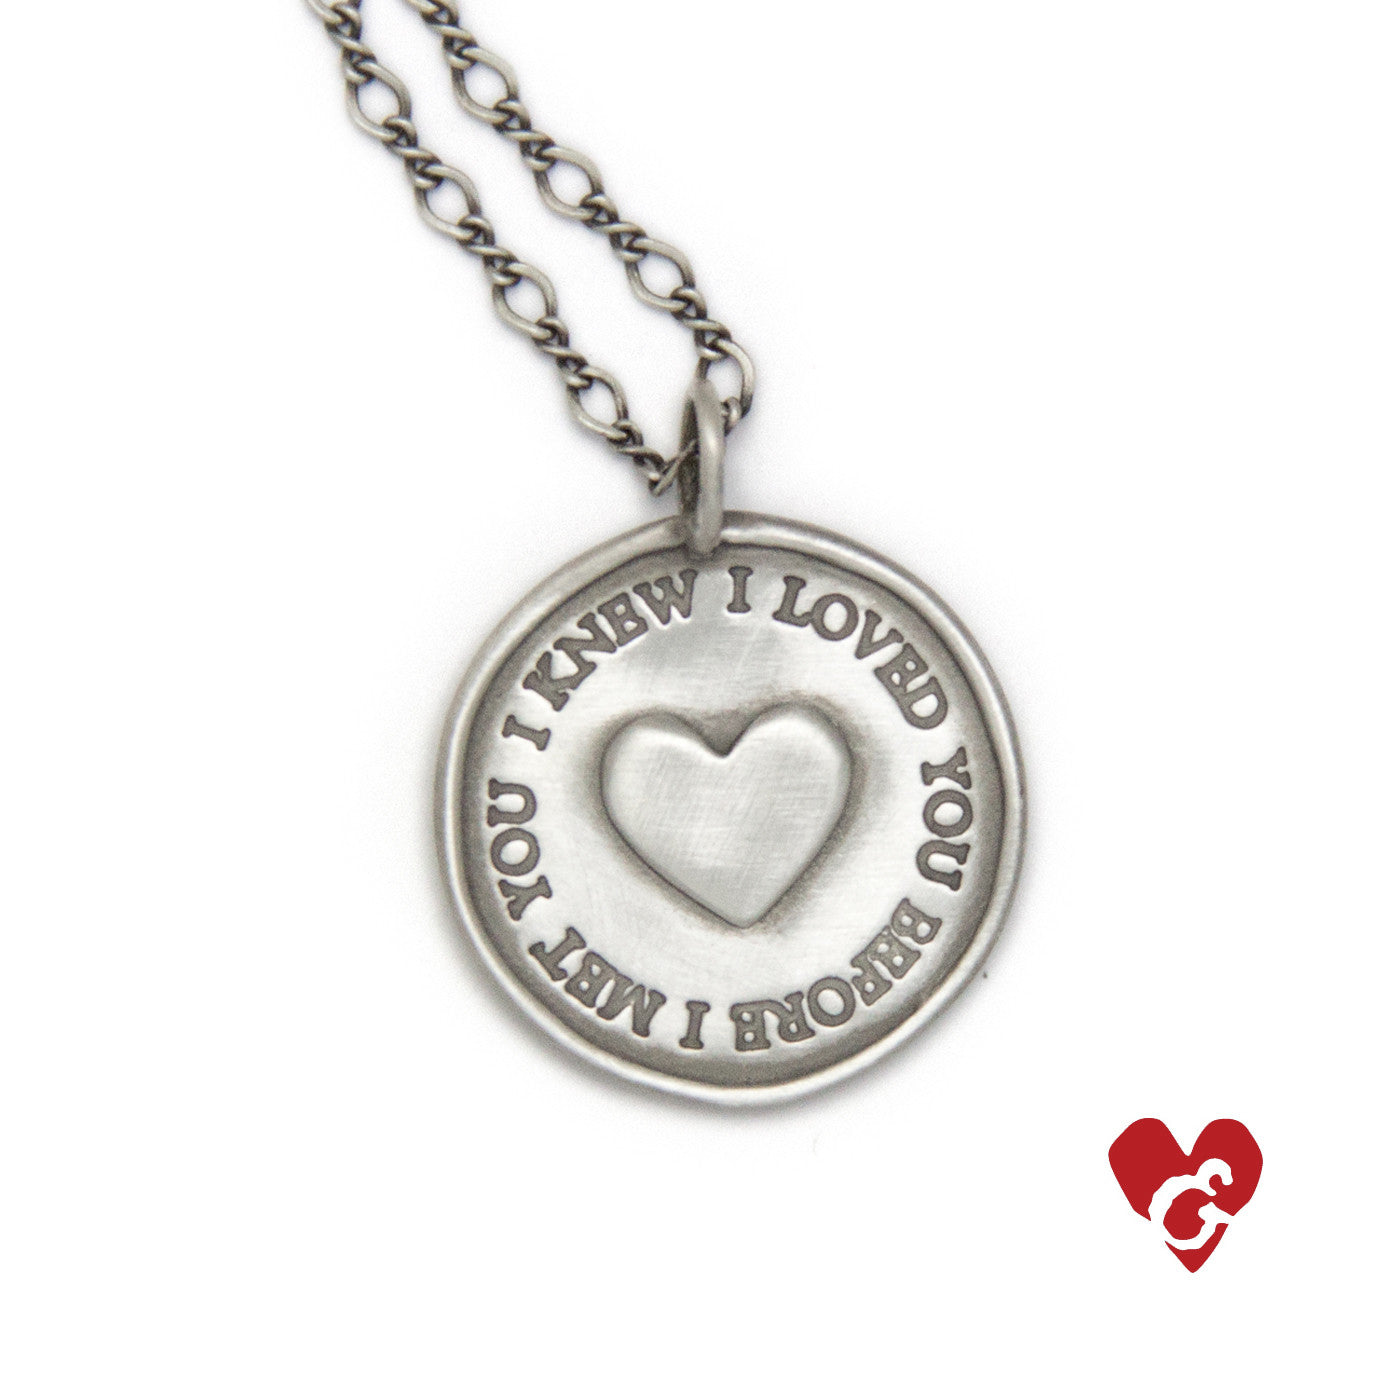 I Knew Necklace Heart And Stone Jewelry